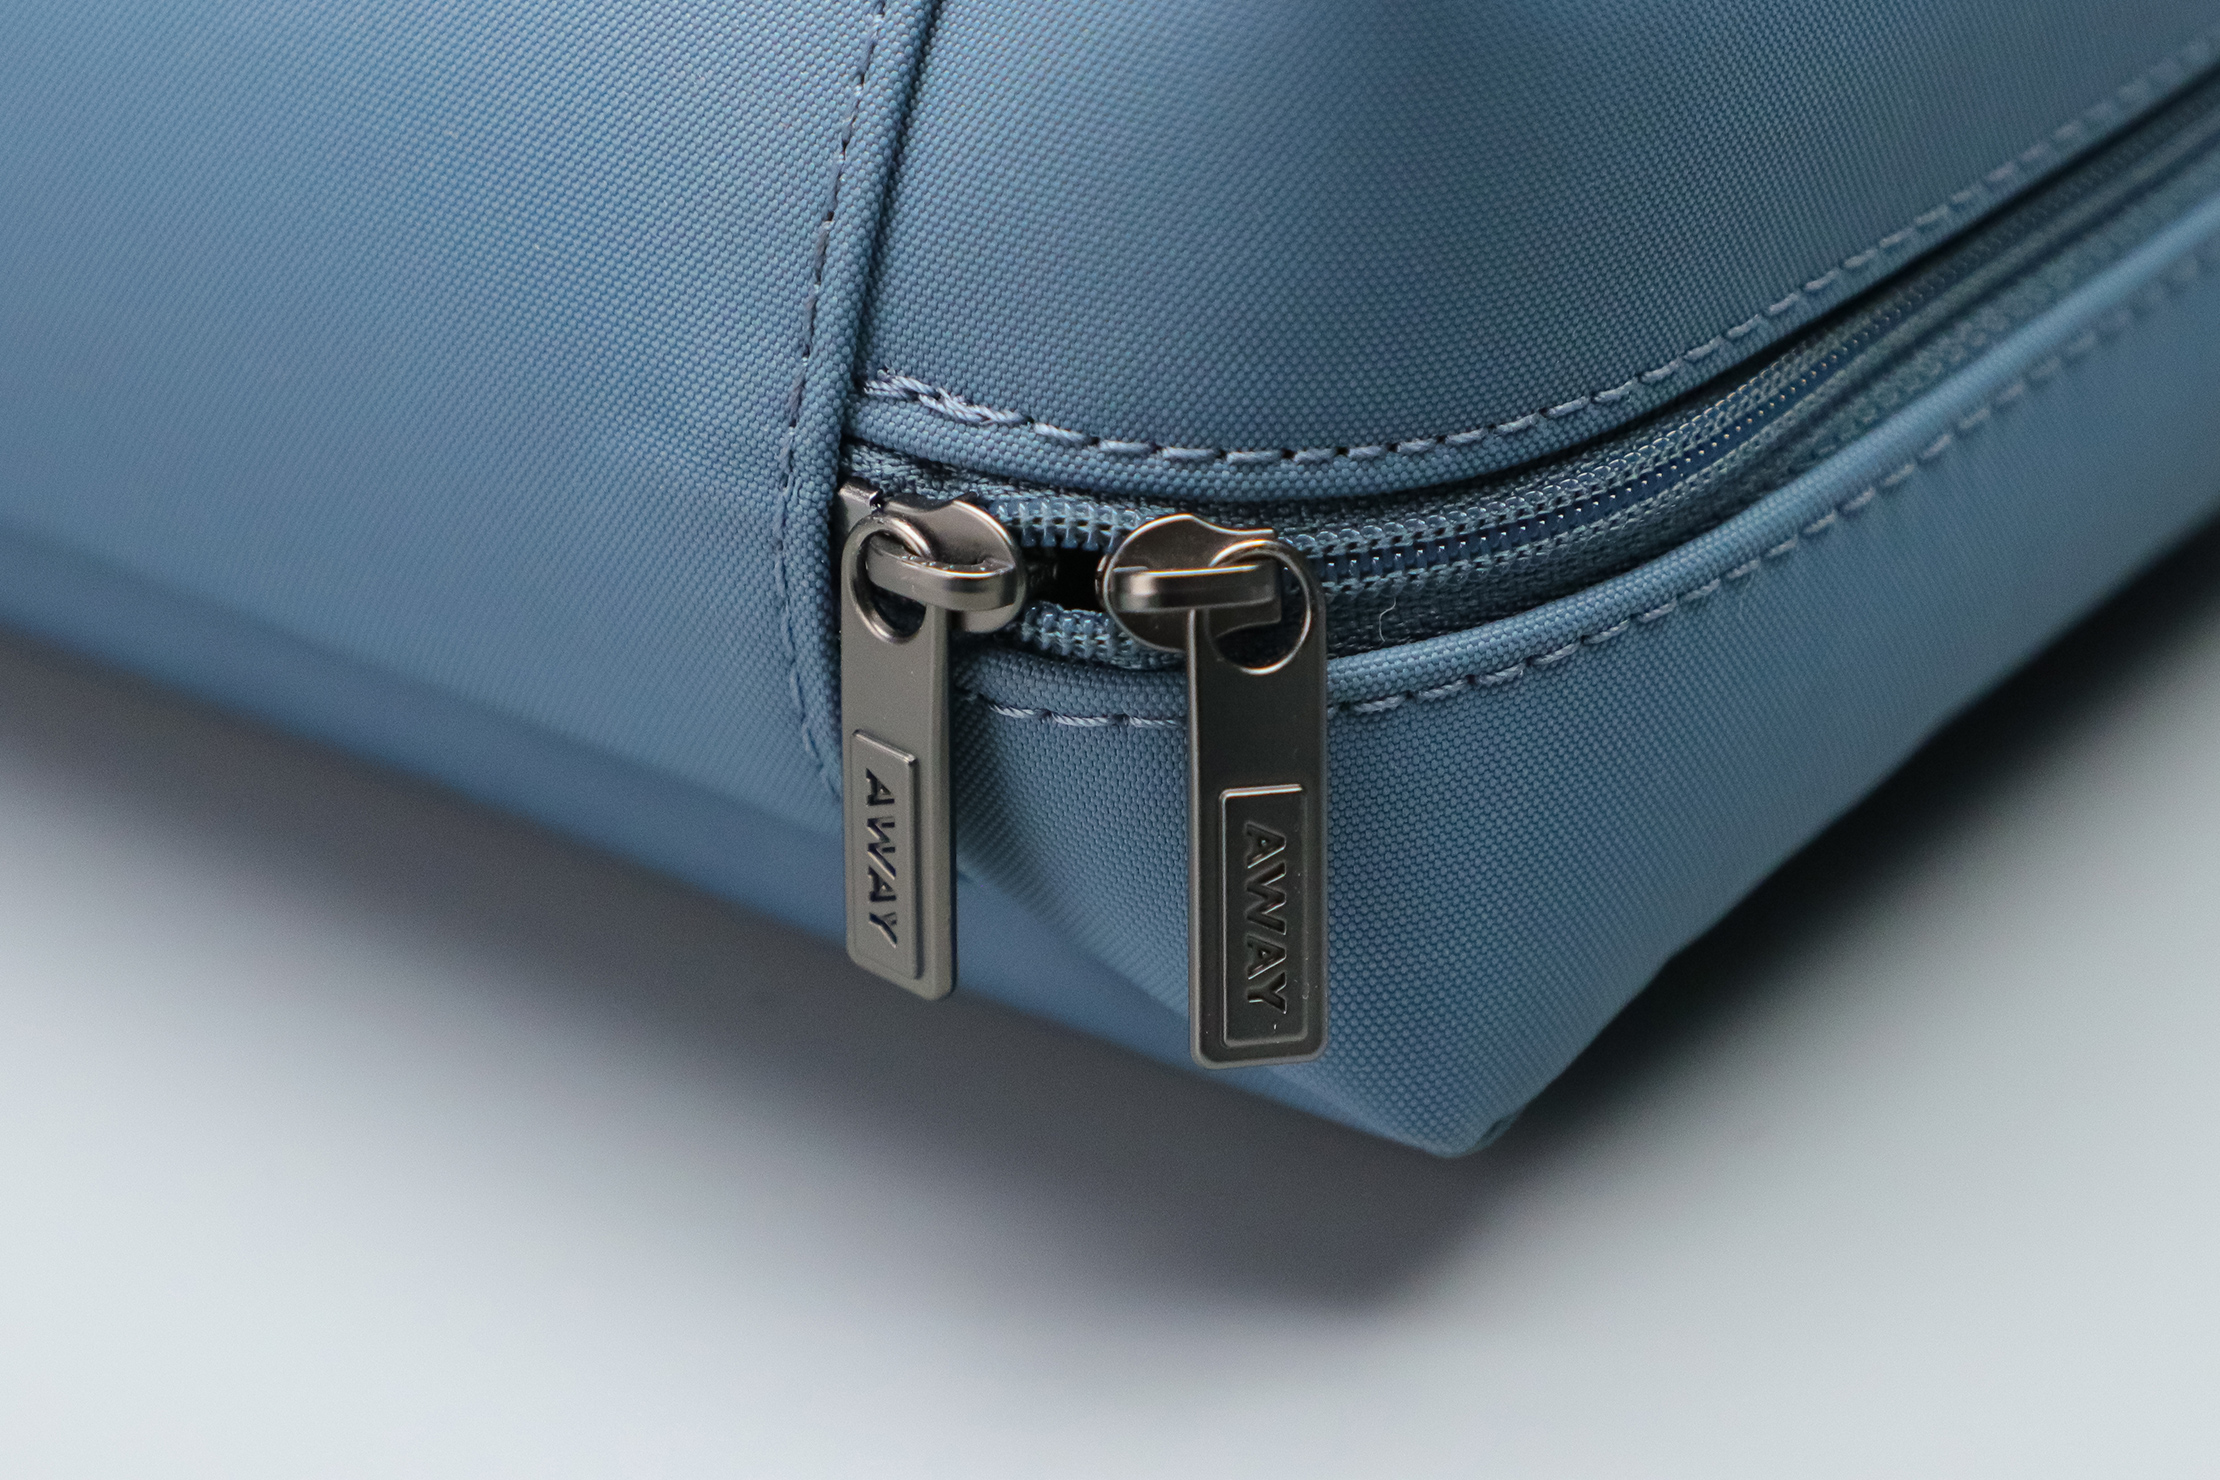 Away Small Toiletry Bag Zippers